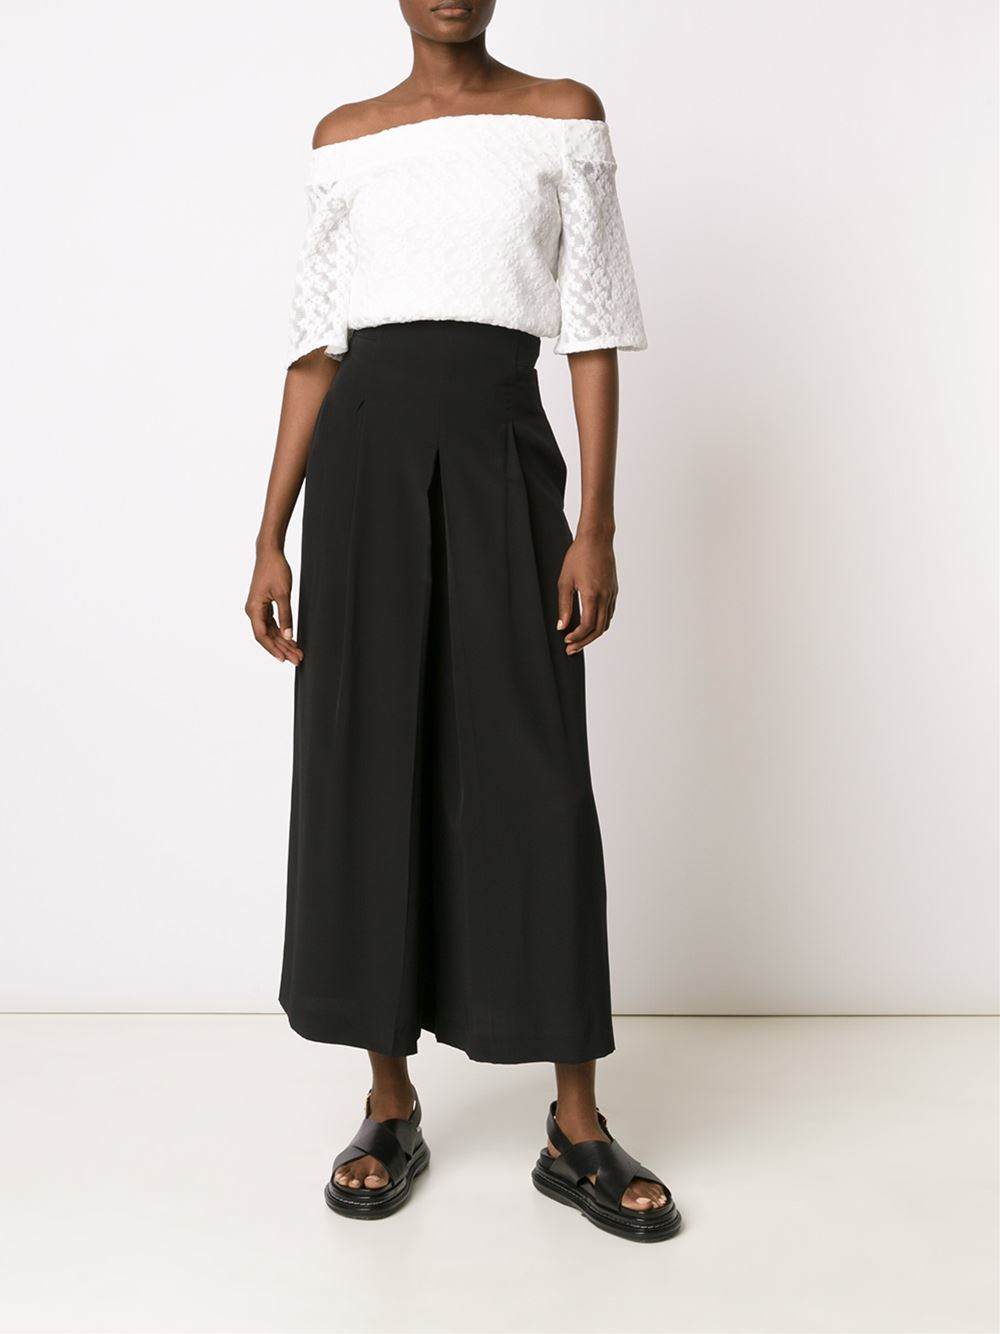 Find your perfect fit with ANN TAYLOR's flattering women's cropped pants. The Crop is timless, streamlined and structured for all occasion from day to night.